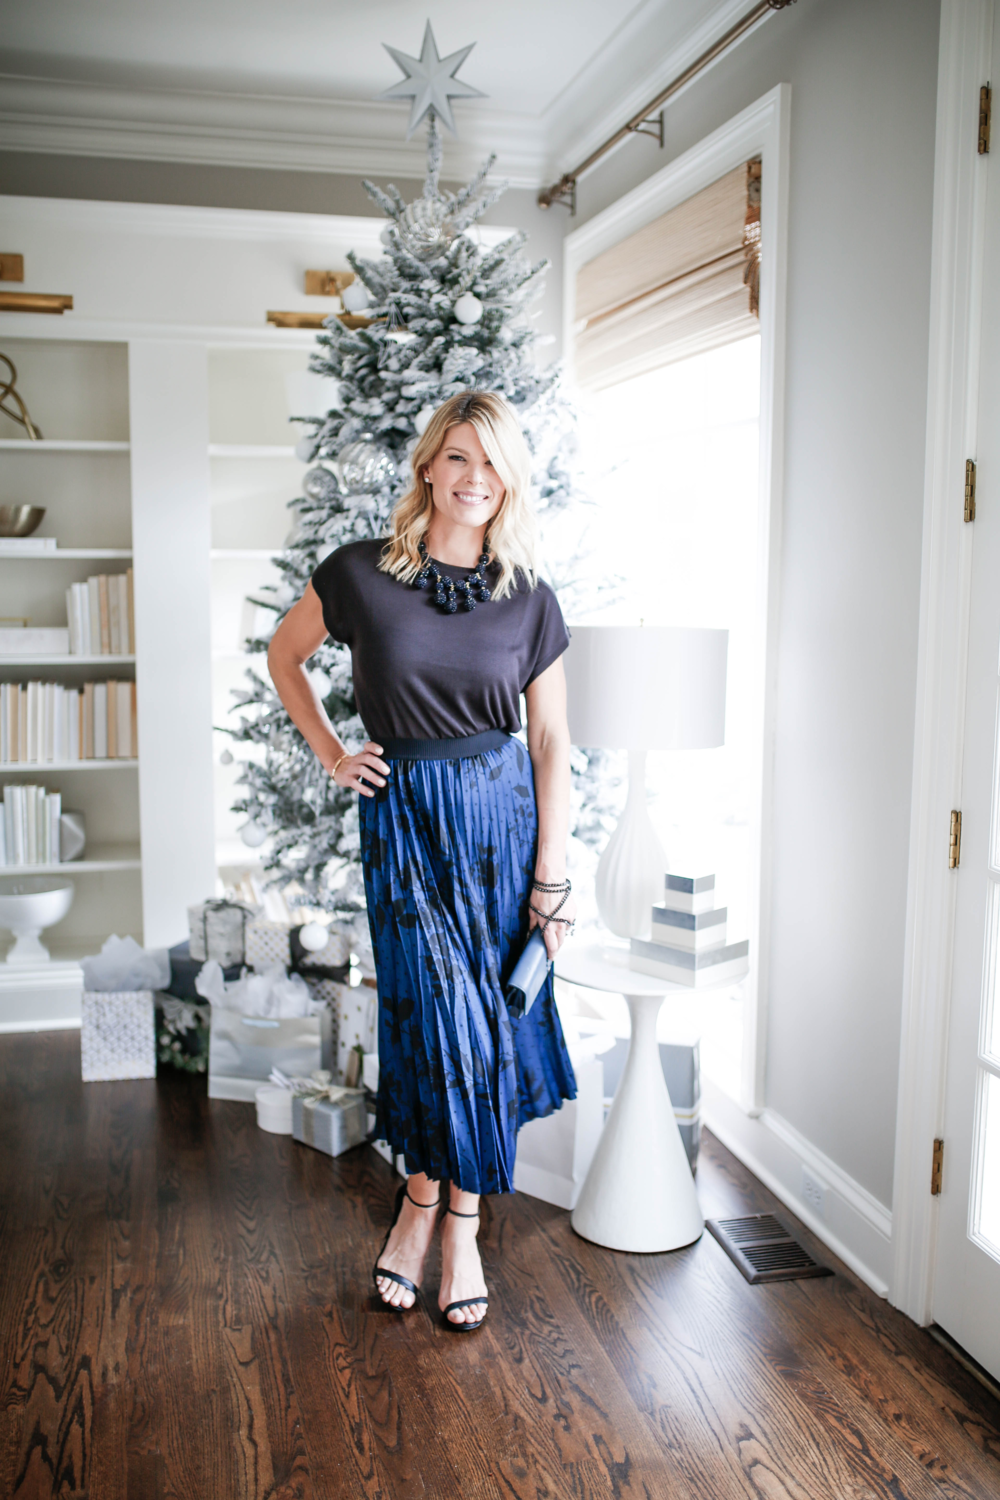 What to wear to an office holiday party, fun and flirty skirt for holiday office party